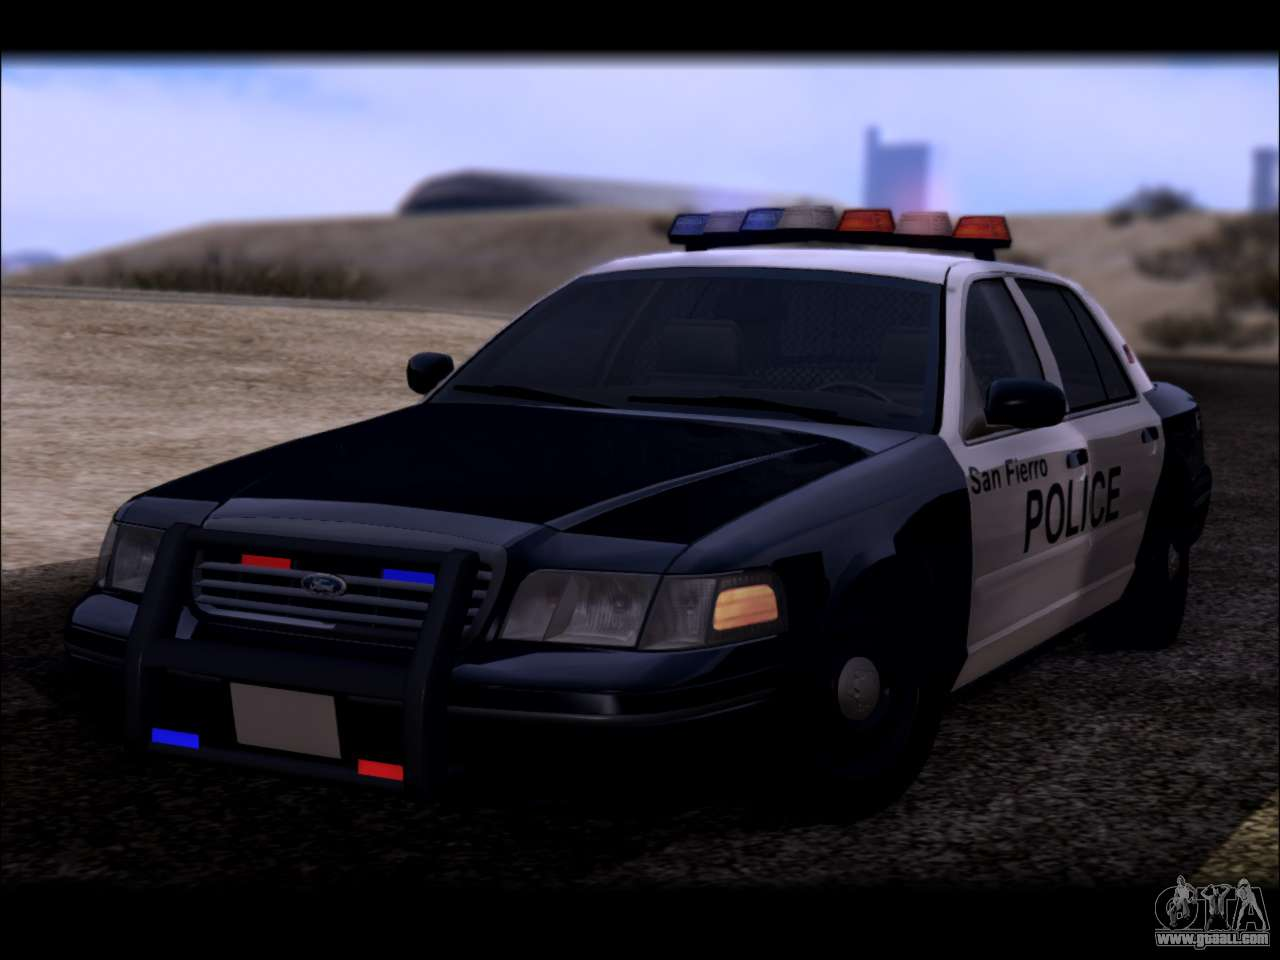 Ford Crown Victoria 2005 Police for GTA San Andreas Gta San Andreas Police Cars